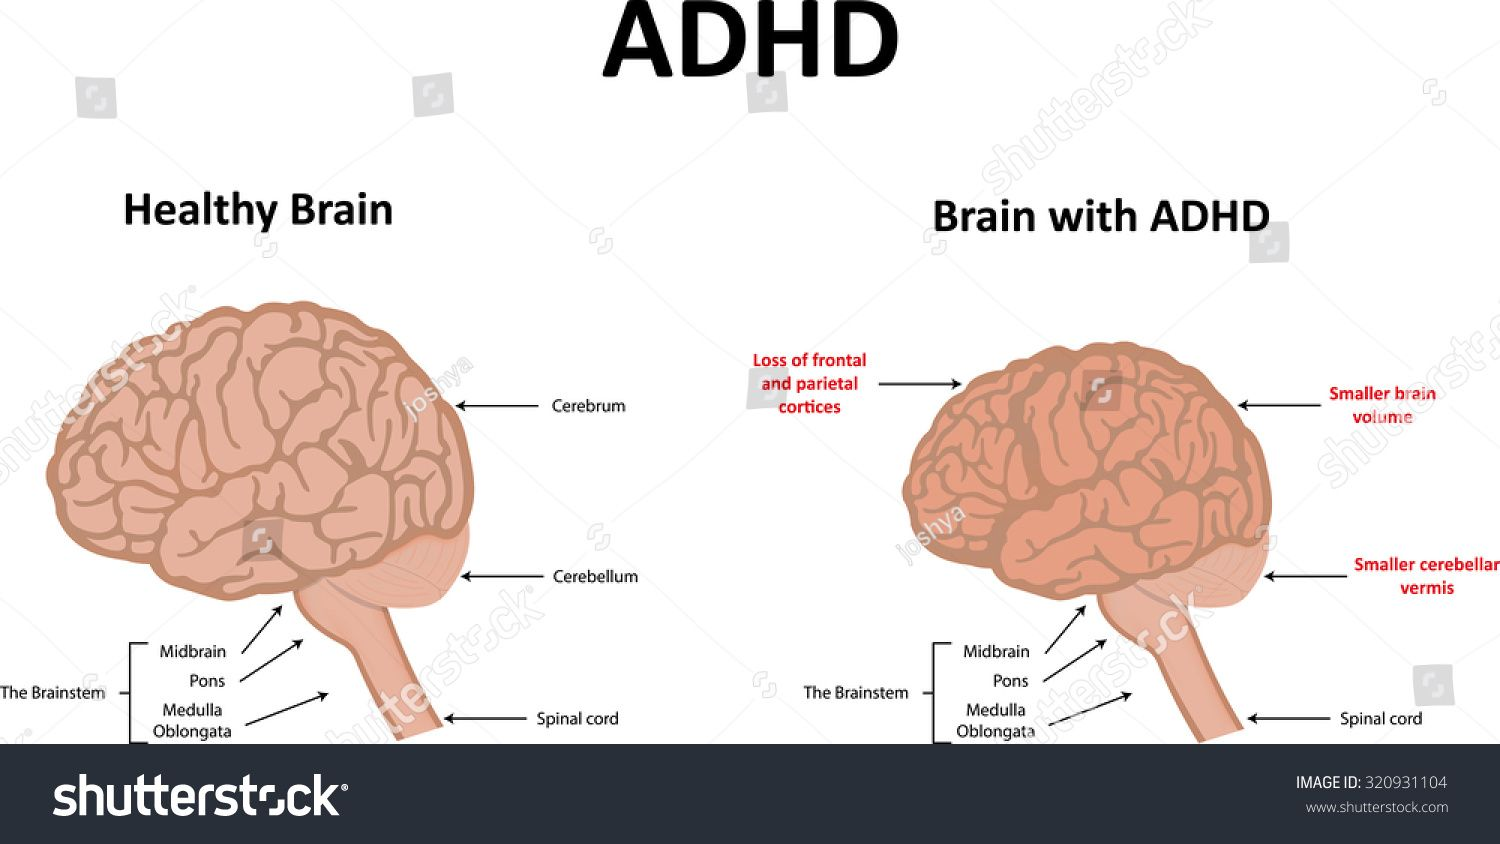 Image Result For Adhd Brain Anatomy Model Rh Com Diagram Of Your